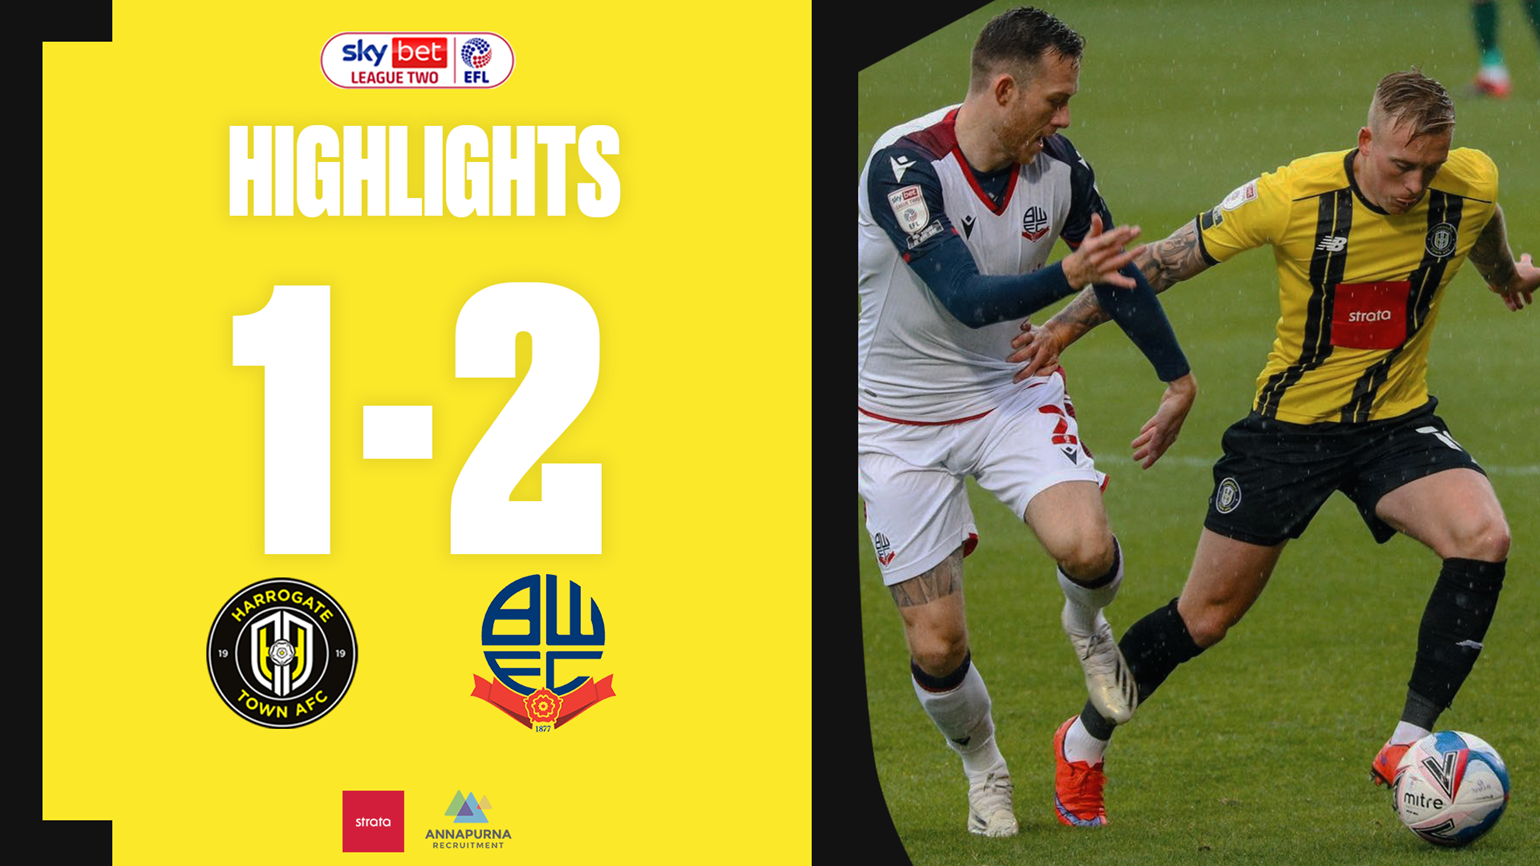 Town 1 Bolton Wanderers 2 Highlights